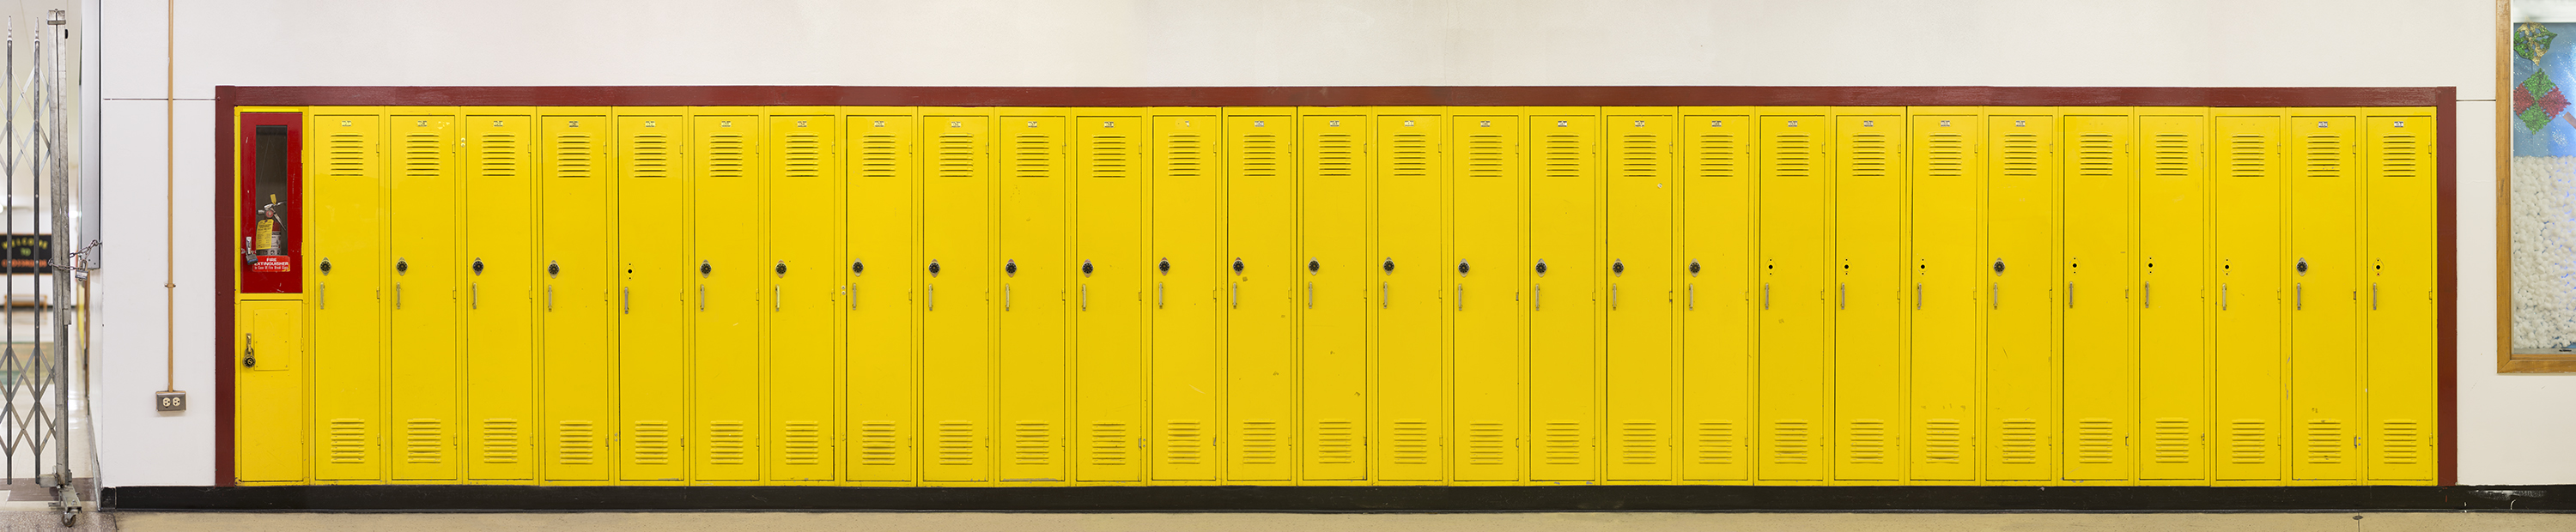 Lockers Julia Bradshaw 2018